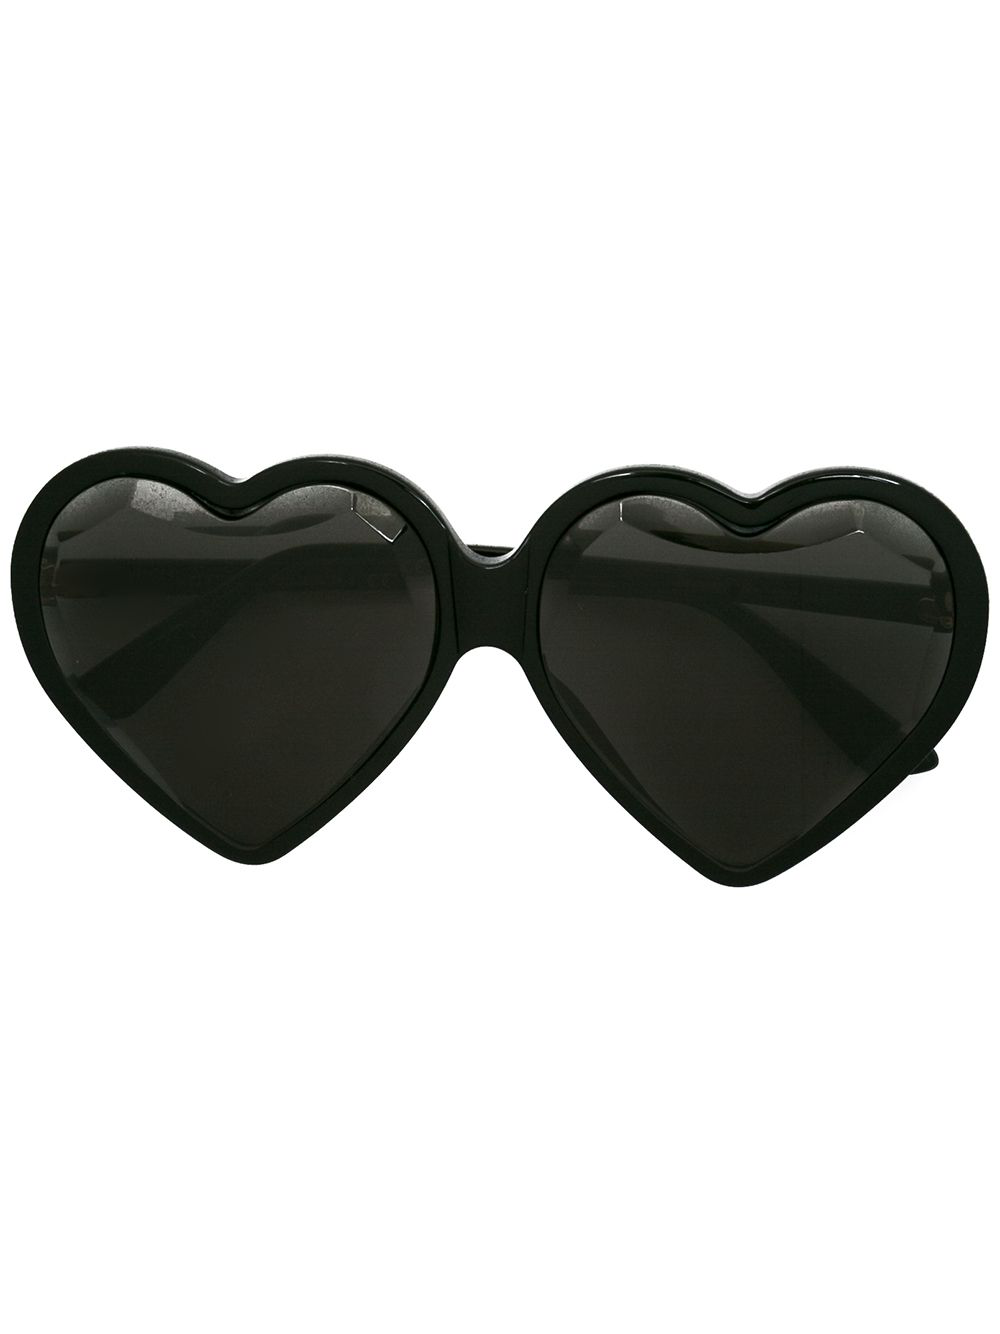 18ecb84be20 Gucci Eyewear Specialized-Fit Heart Frame Sunglasses - Black